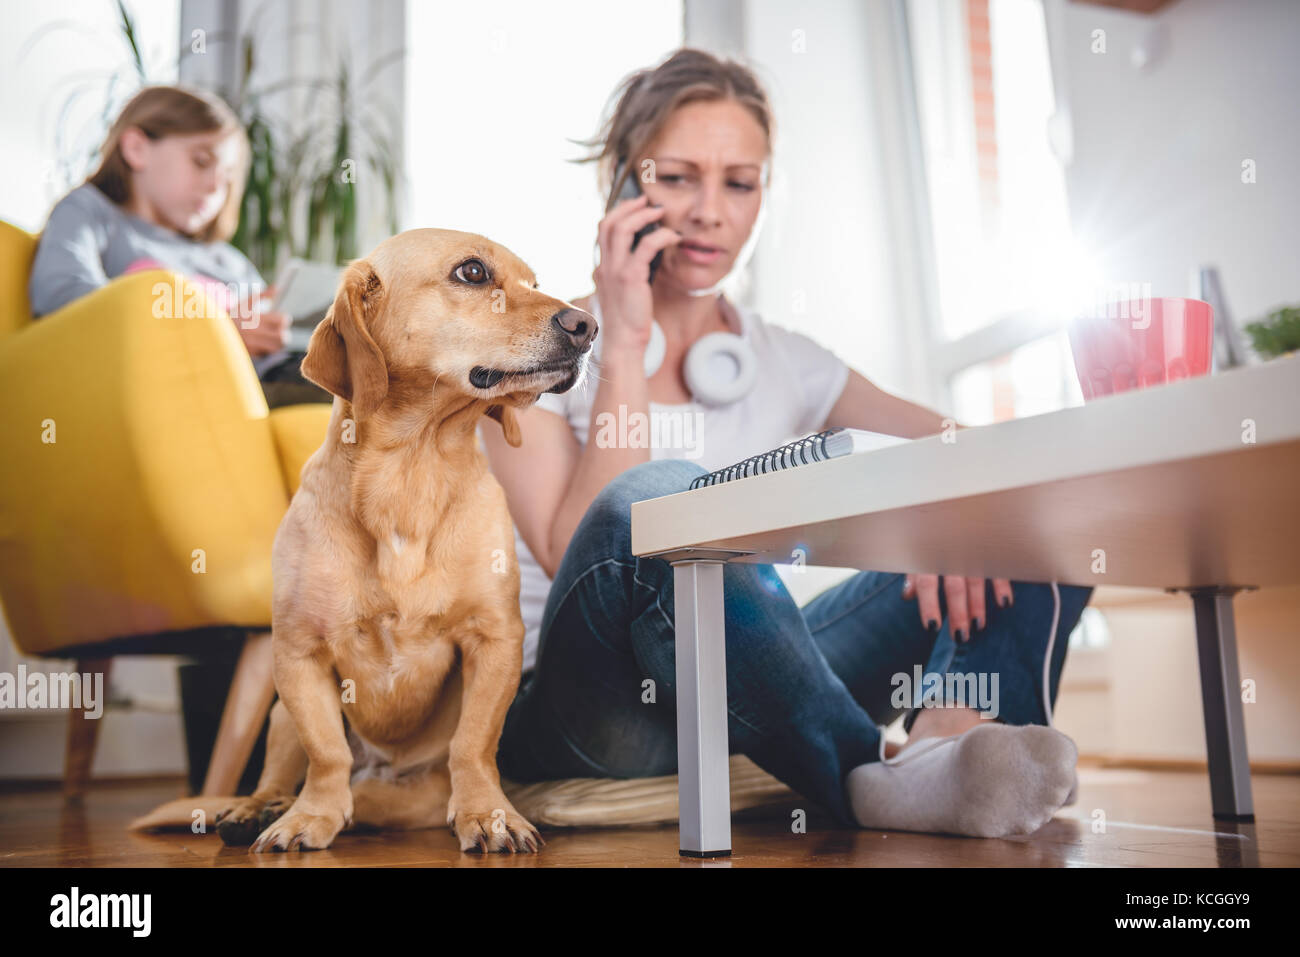 Small yellow dog sitting on the floor by woman who is talking on the smart phone - Stock Image